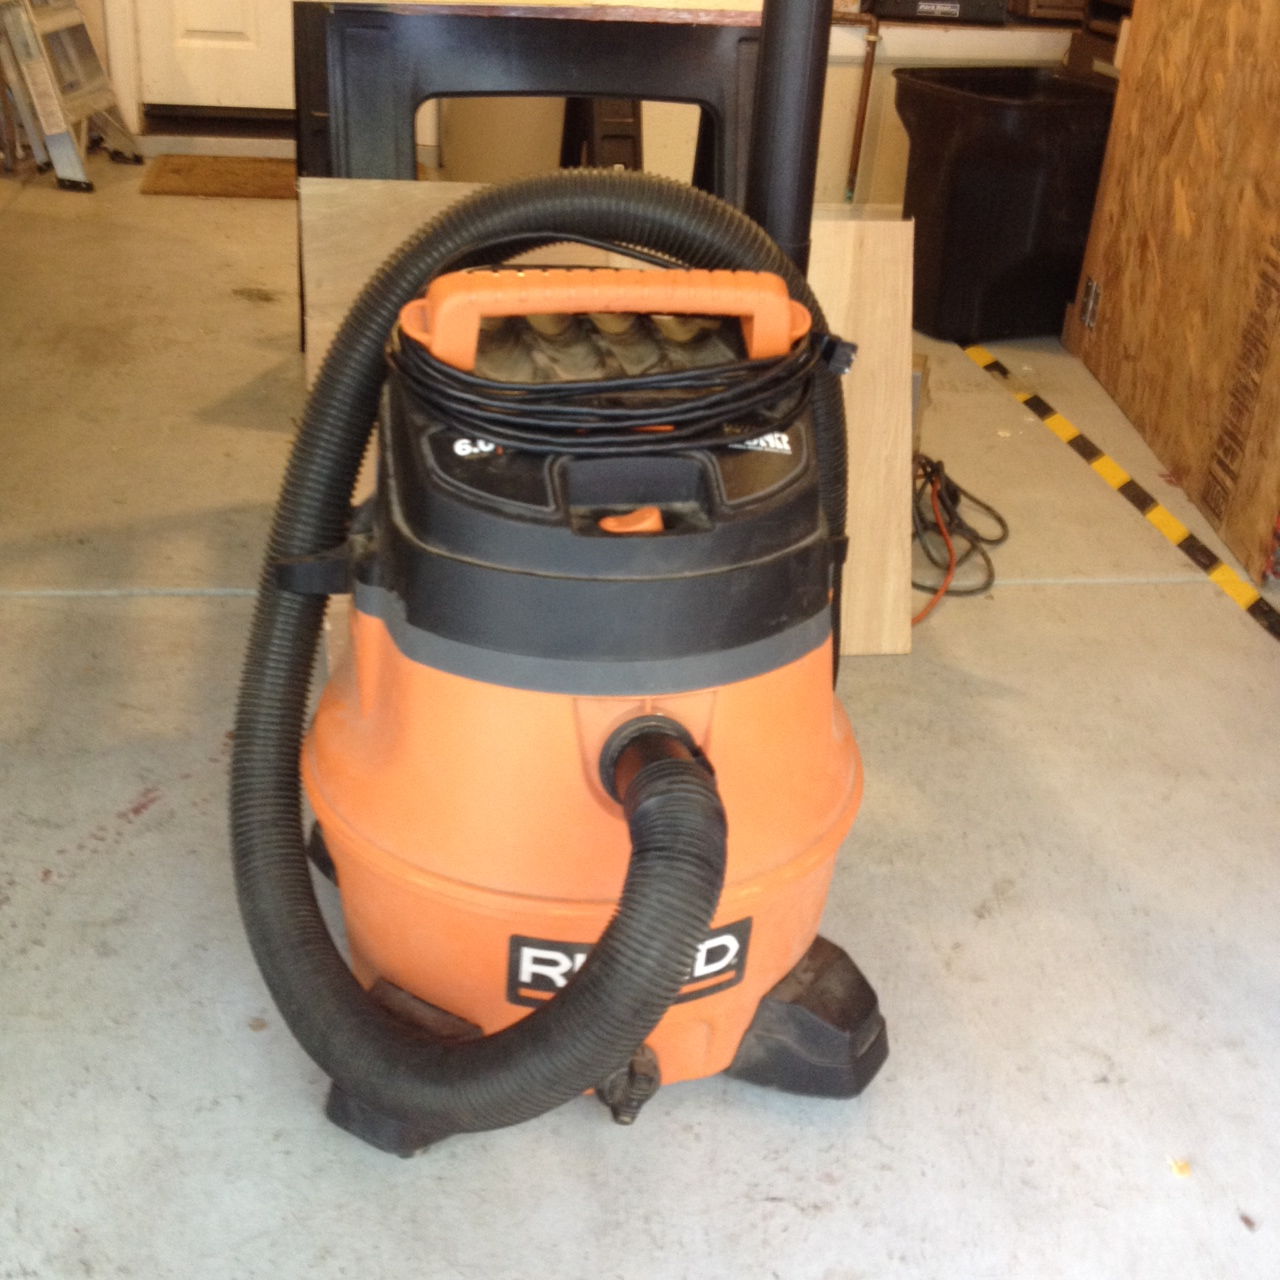 Ridgid Shop Vac Casters >> Loanables:Ridgid 6HP Shop Vac Shop located in Boulder Creek, CA